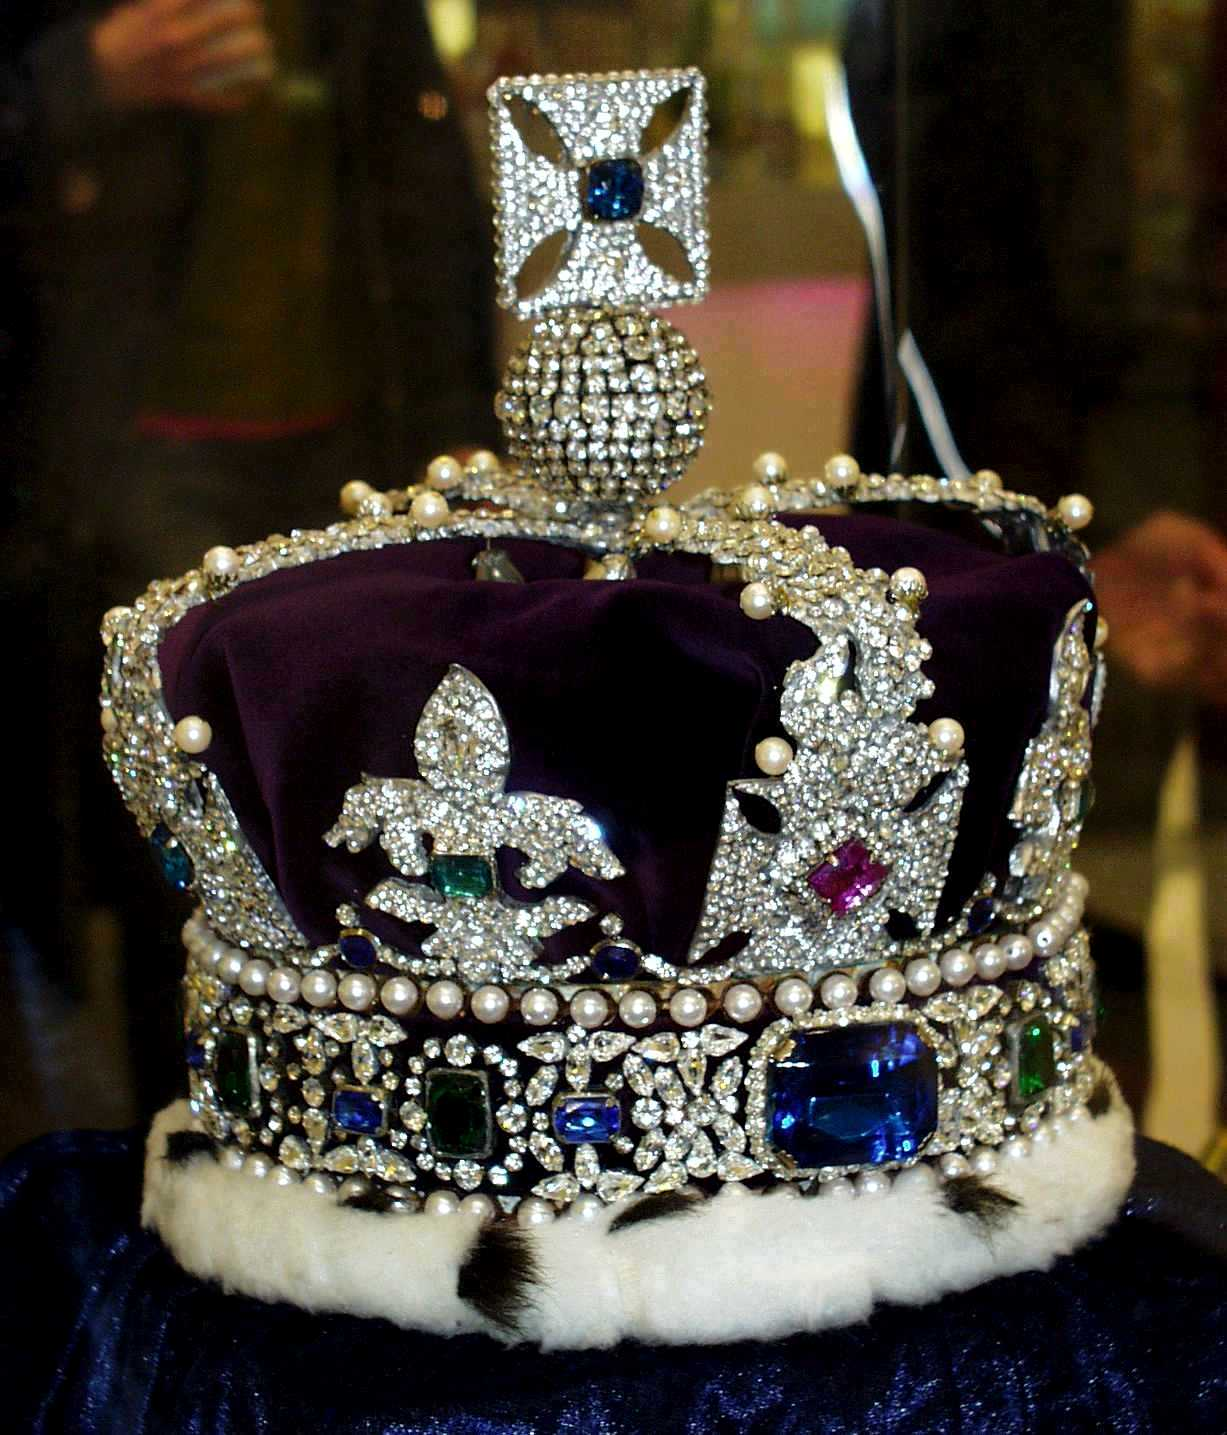 The crown jewels moreover Showthread additionally YnJpdGlzaCBjcm93biAgamV3ZWxz also Claddagh Ring additionally Austrian Crown Jewels At The Schatzkammer Vienna Austria. on prussian crown jewls